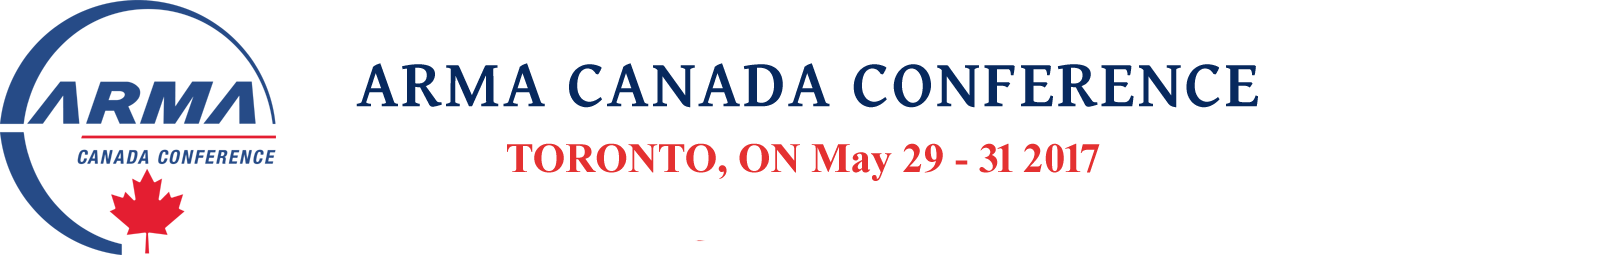 Collabware is a sponsor of the ARMA Canada Conference.